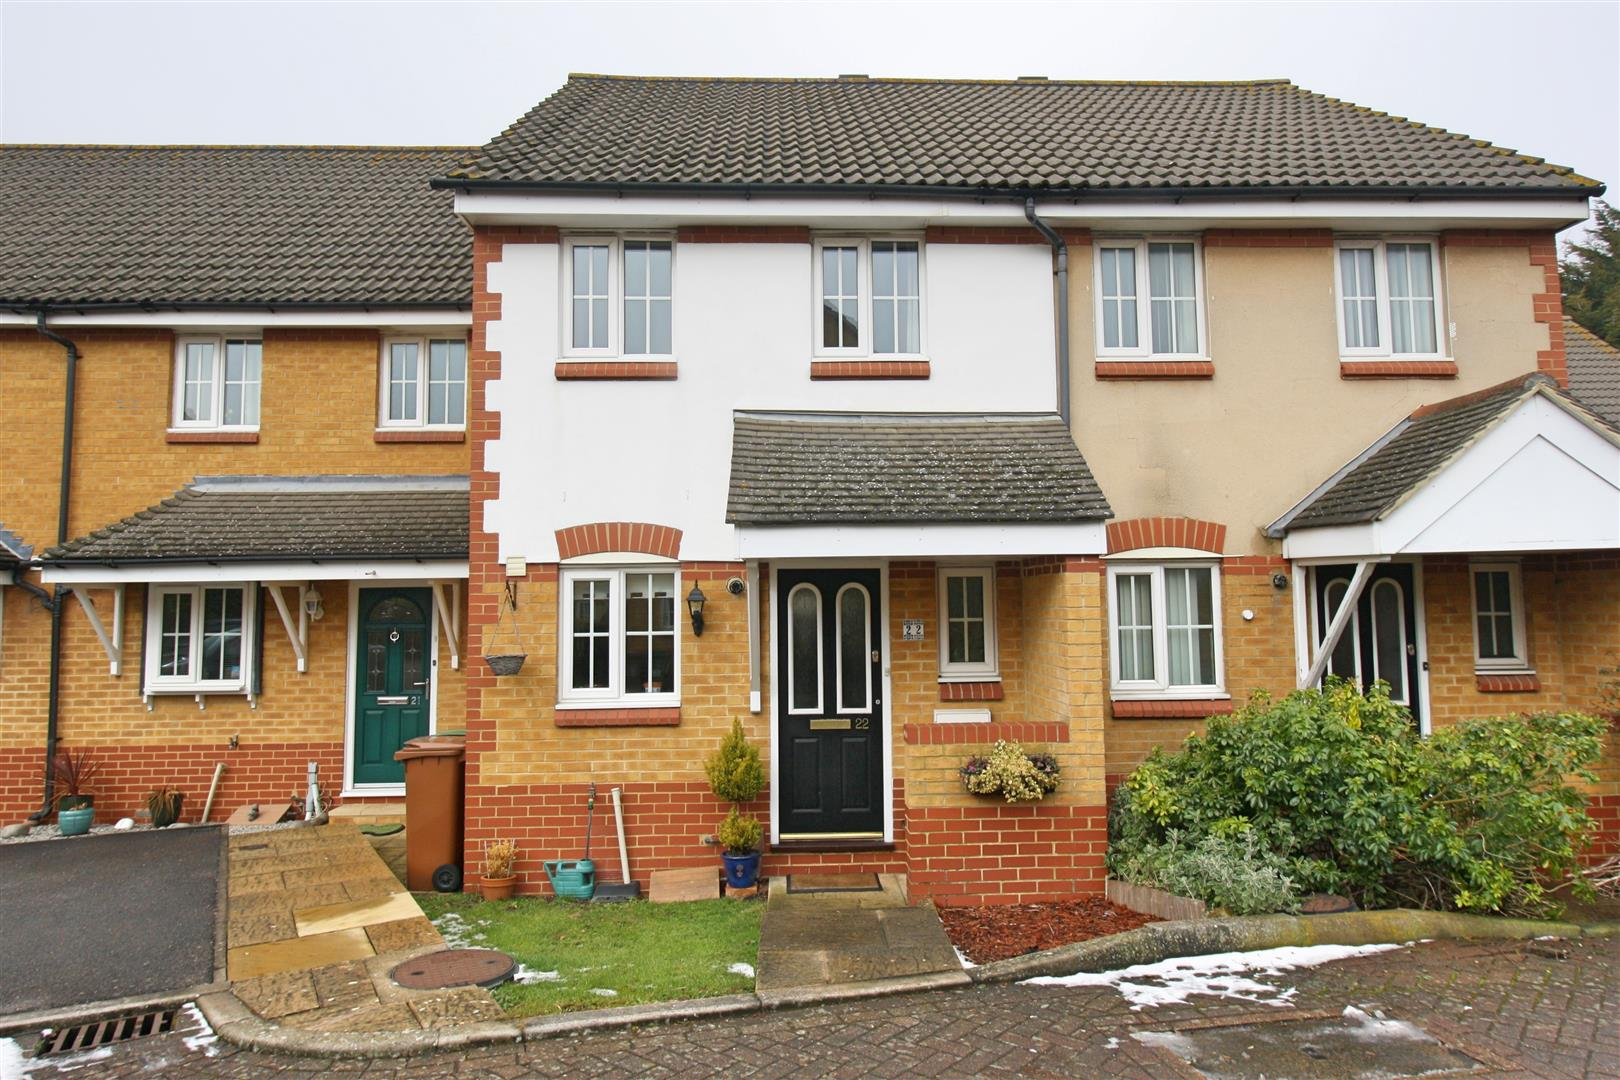 2 bed terraced house to rent in Elizabeth Close, Sutton, SM1